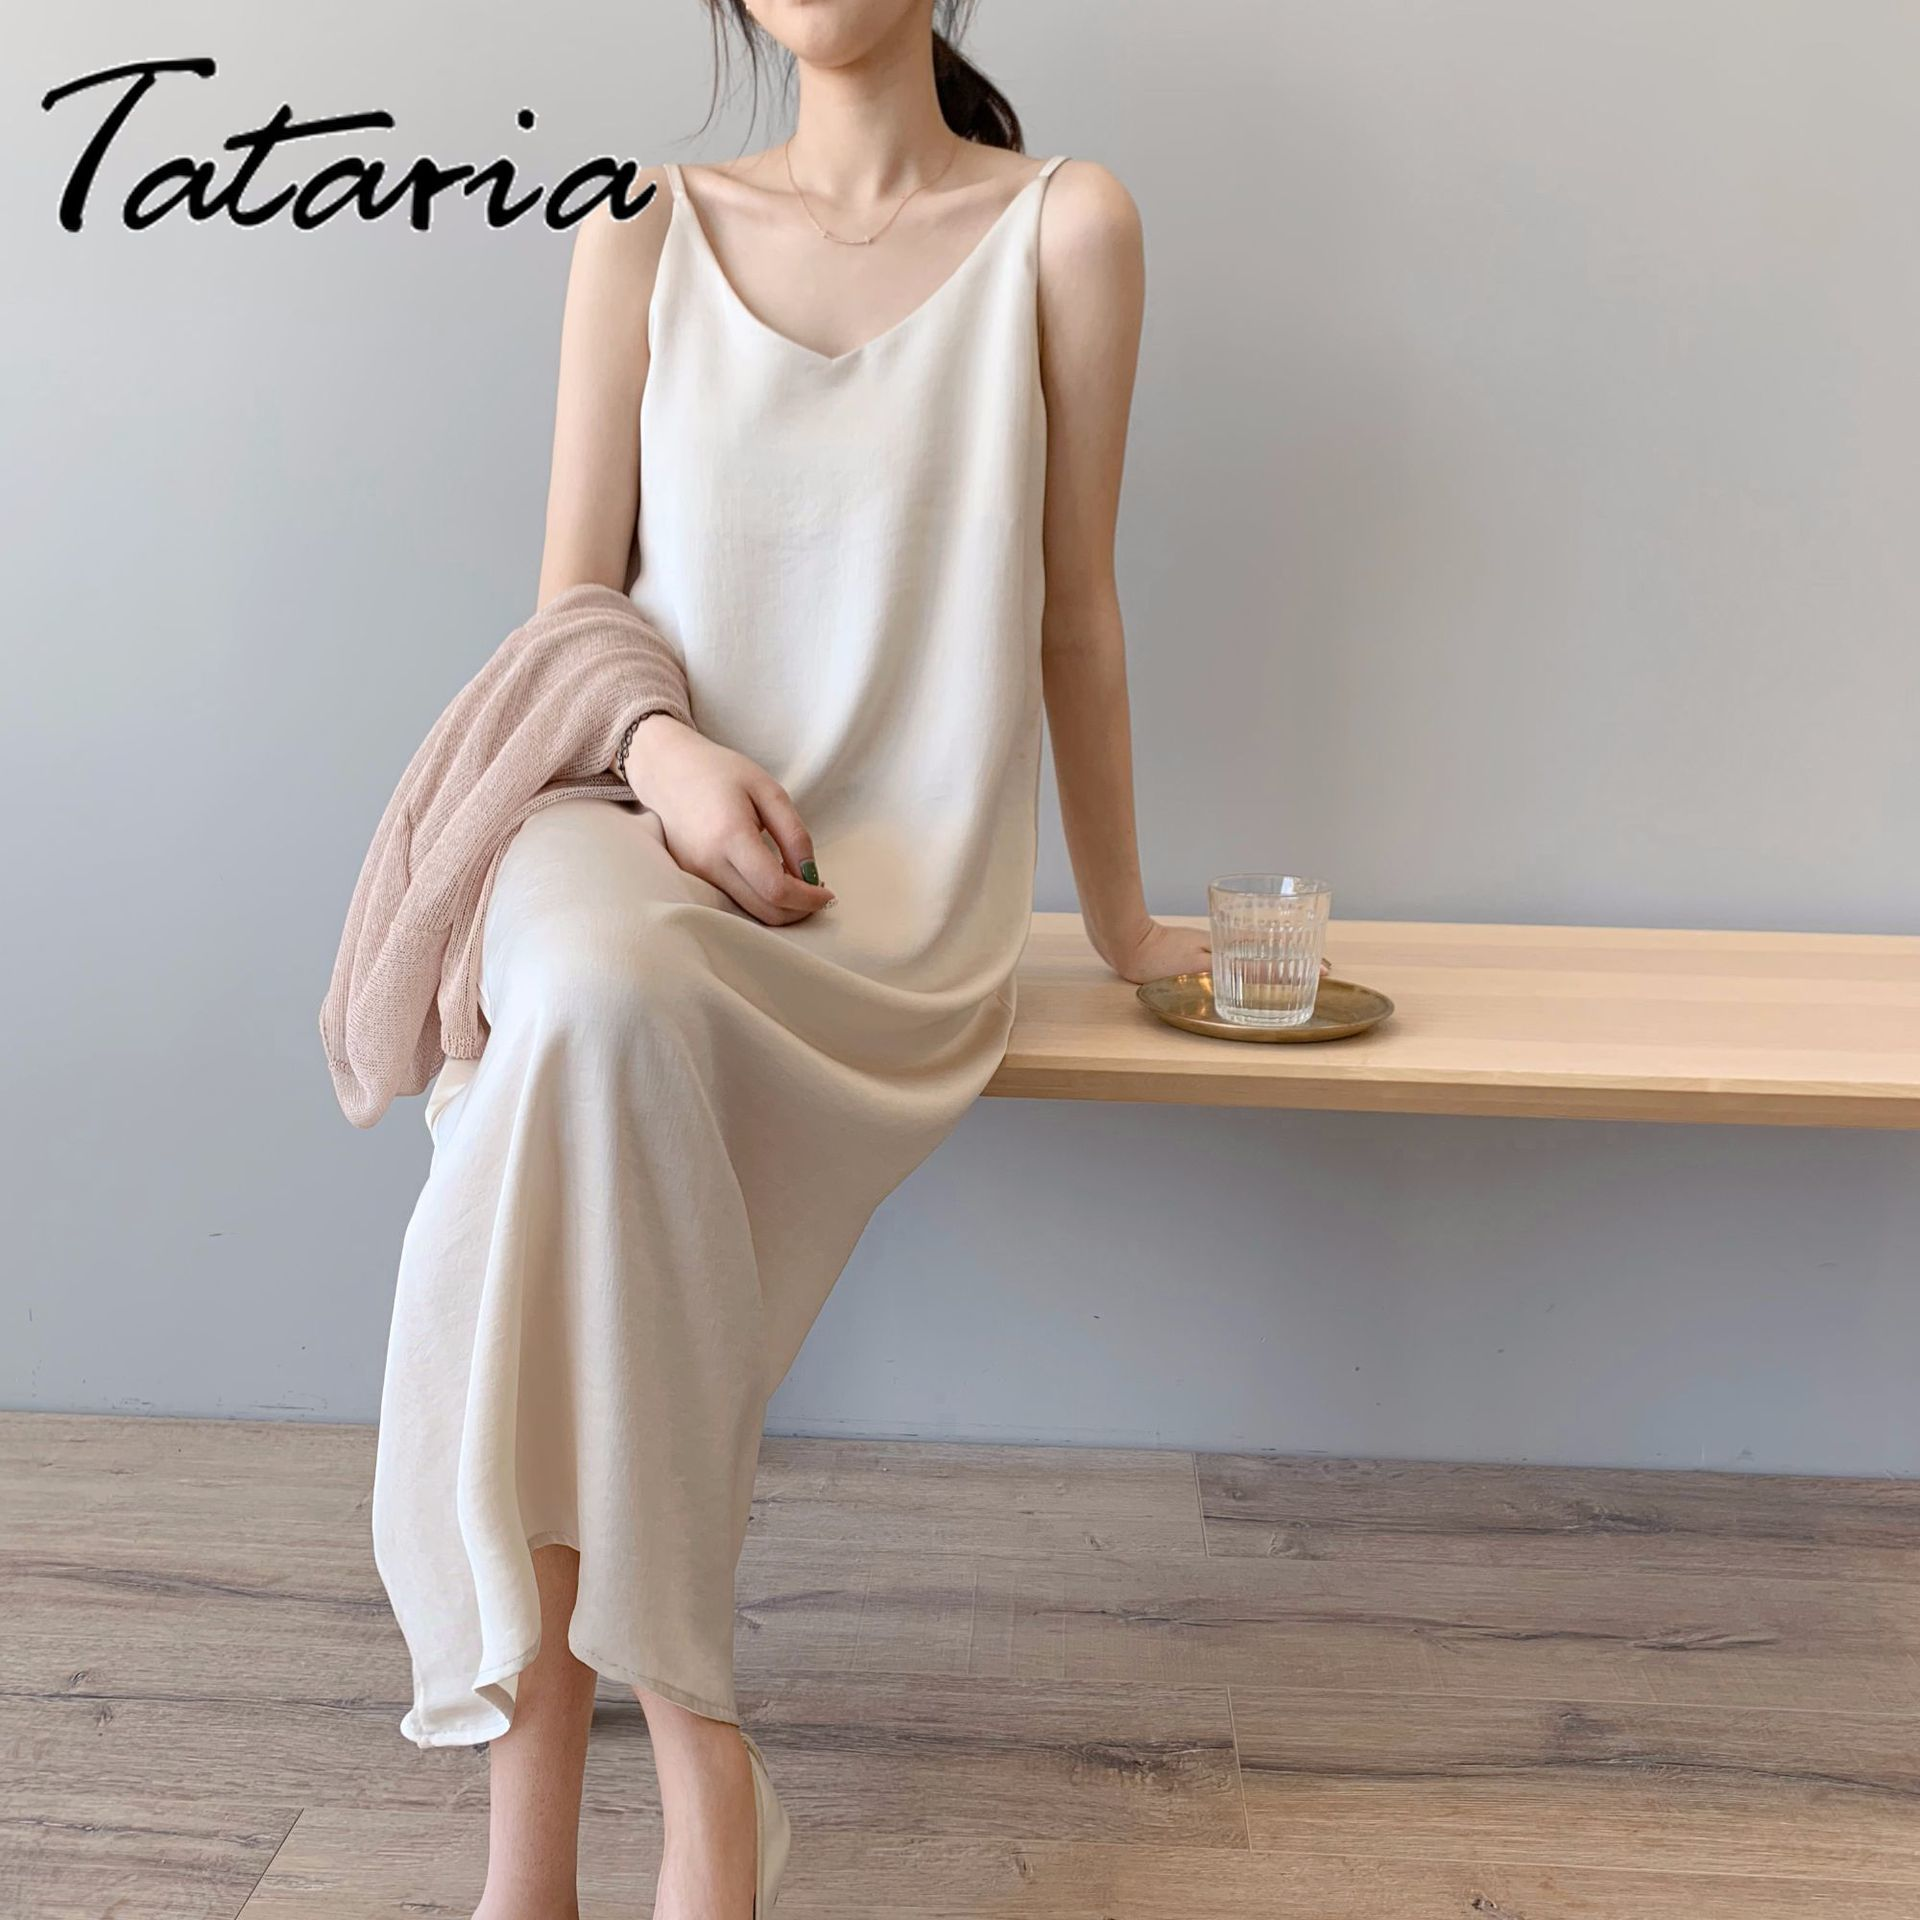 2020 Women Spring Summer Satin Dress Luxury Shiny Sundress Vintage